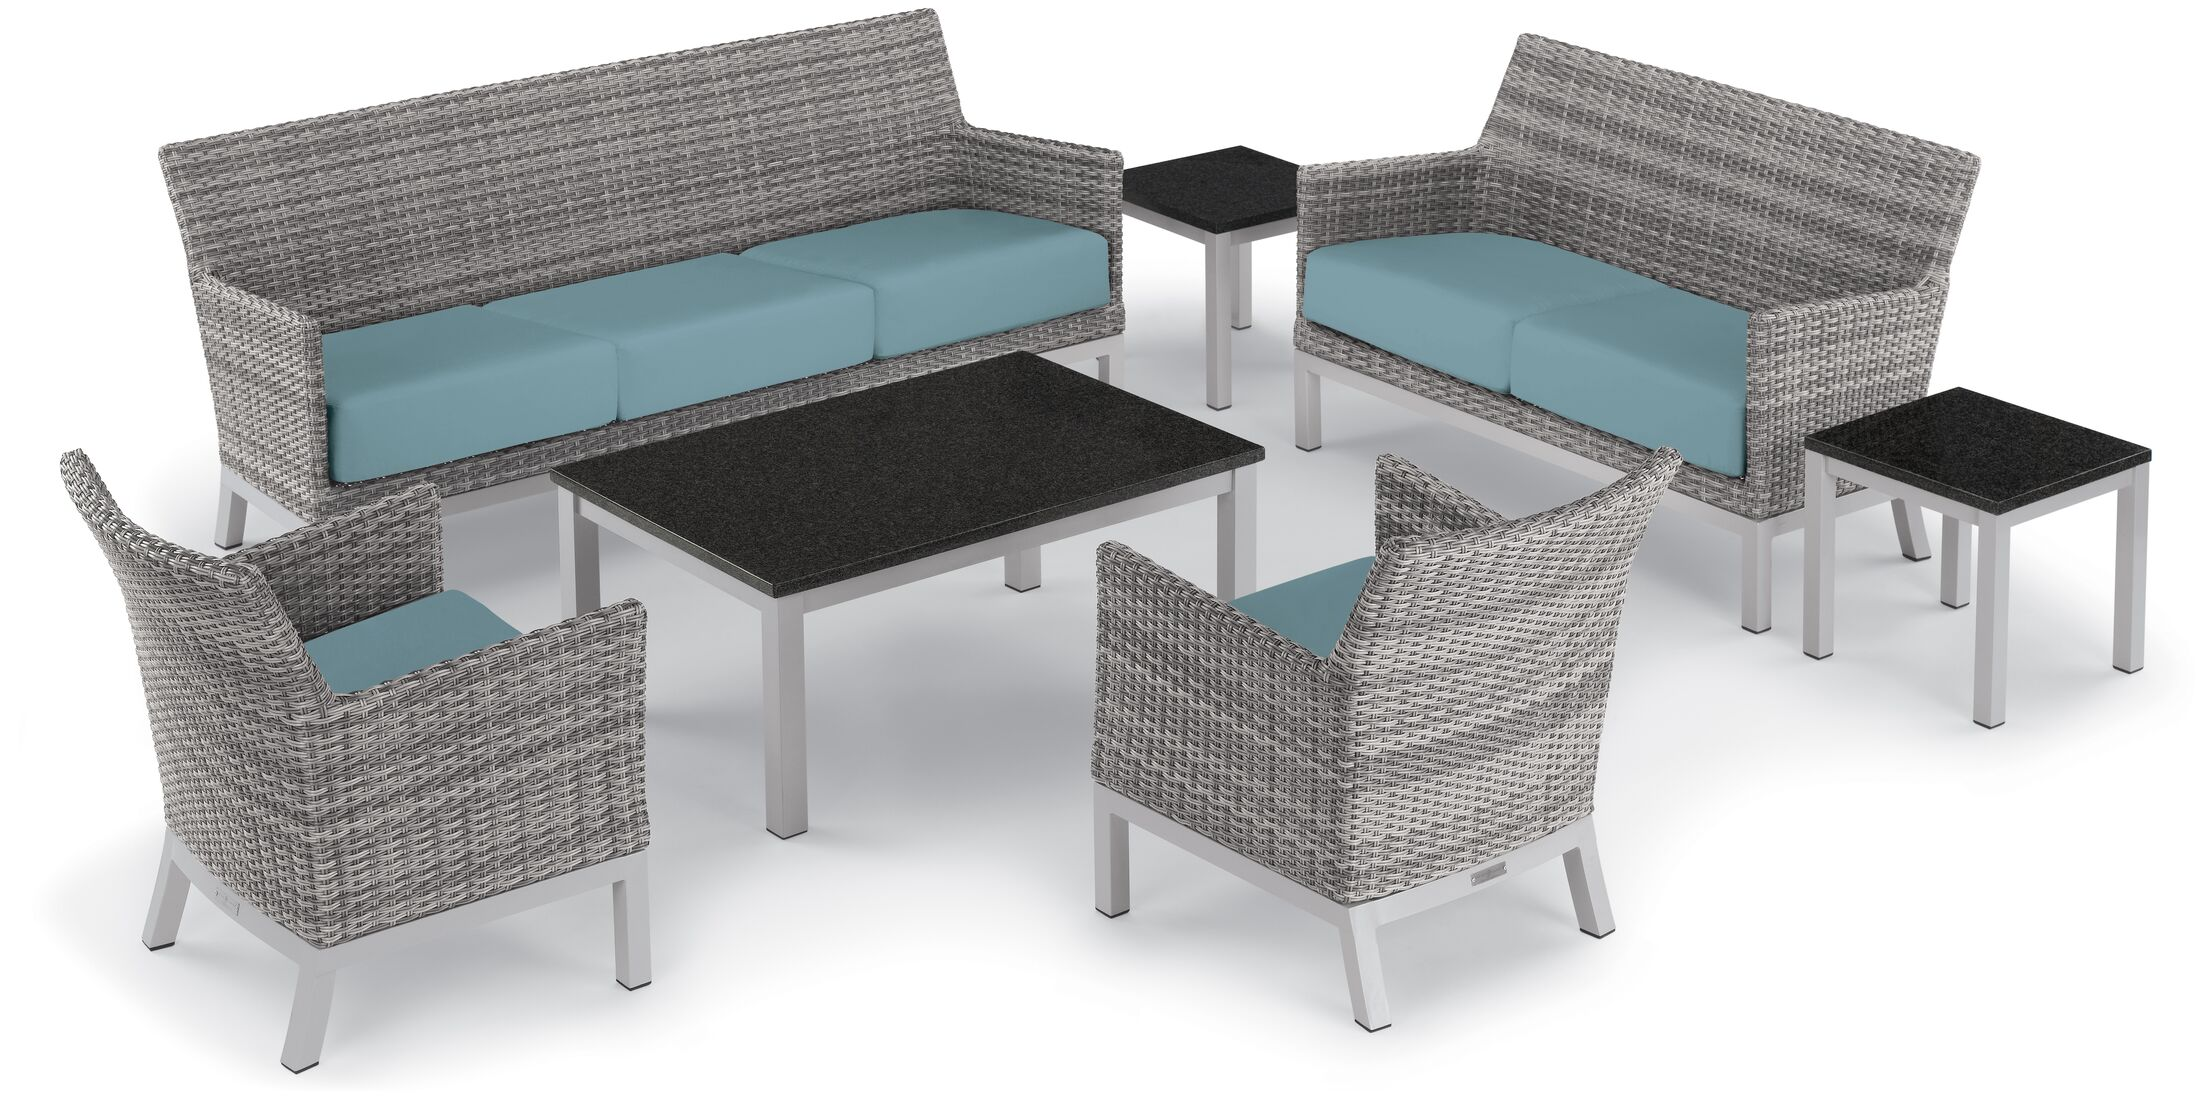 Saint-Pierre 6 Piece Sofa Set with Cushions Cushion Color: Ice Blue , Table Top Color: Charcoal